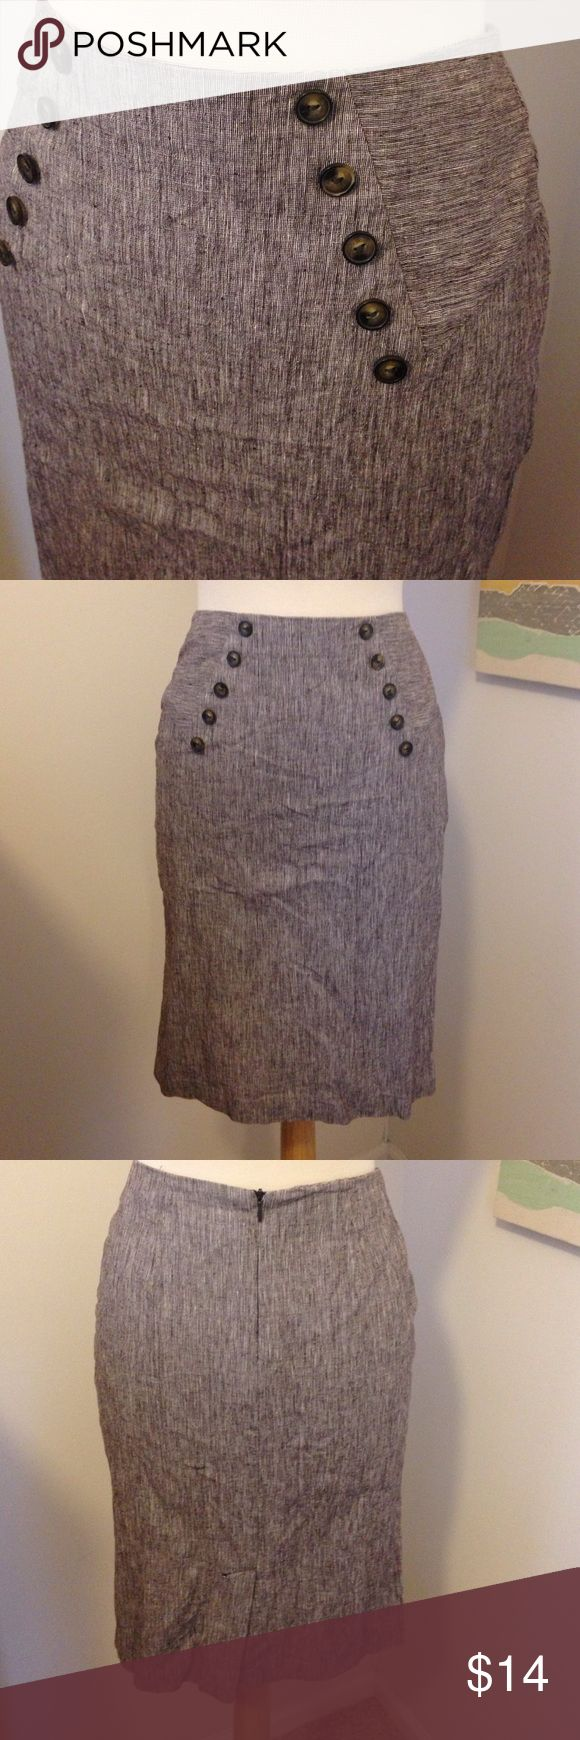 High waisted brown pencil skirt Heathered texture high waisted pencil skirt. With buttons along the front. Super cute and comfortable, stretchy. Only wore a couple times, great for job interviews, work, cocktails. Great condition BCX Skirts Pencil